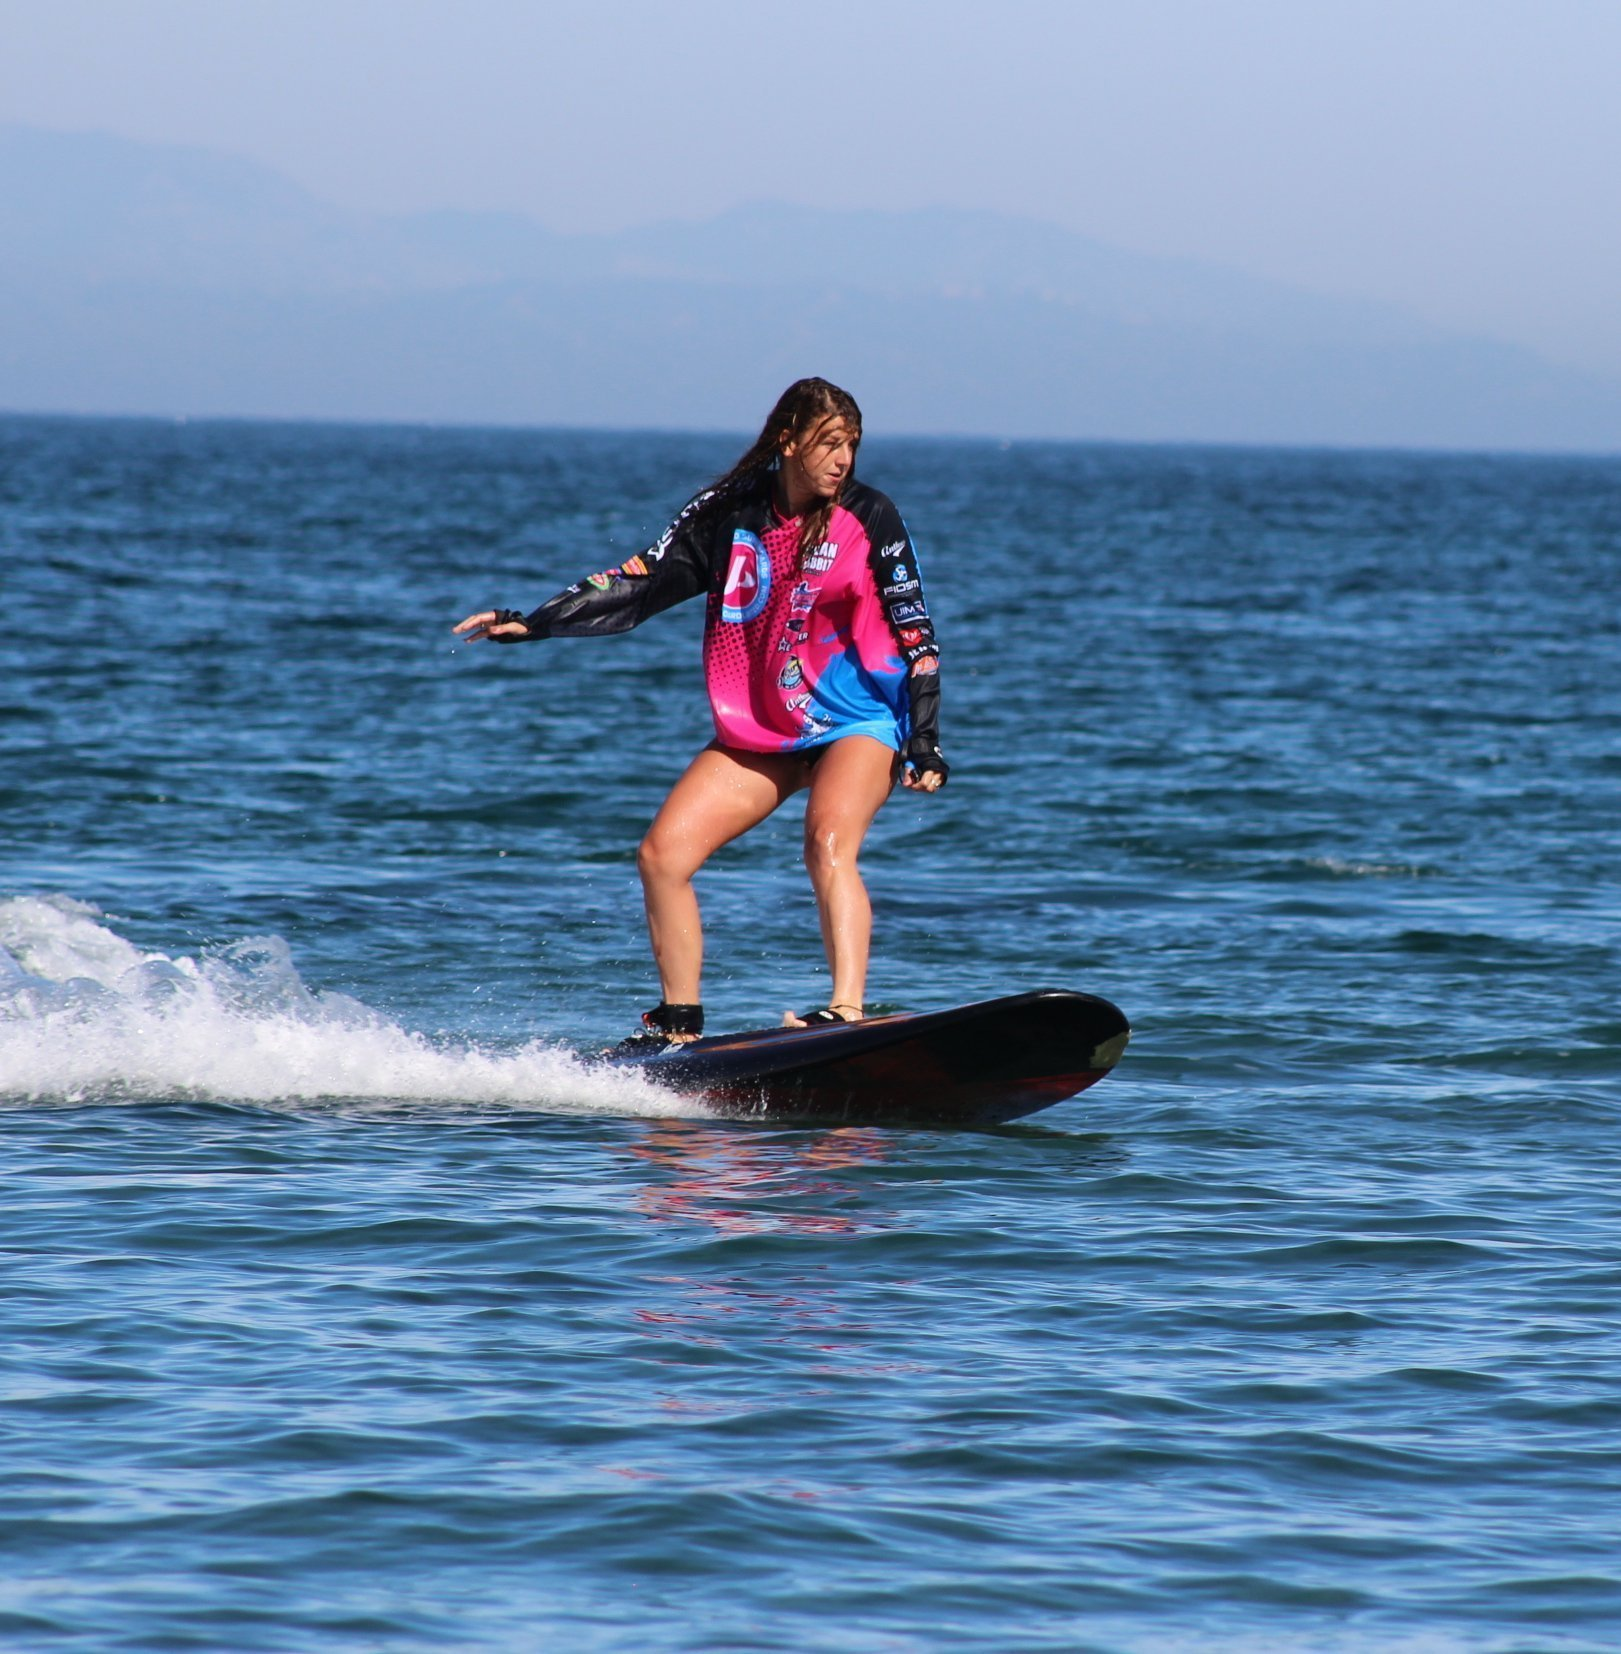 Girl riding onean carver x jetboard